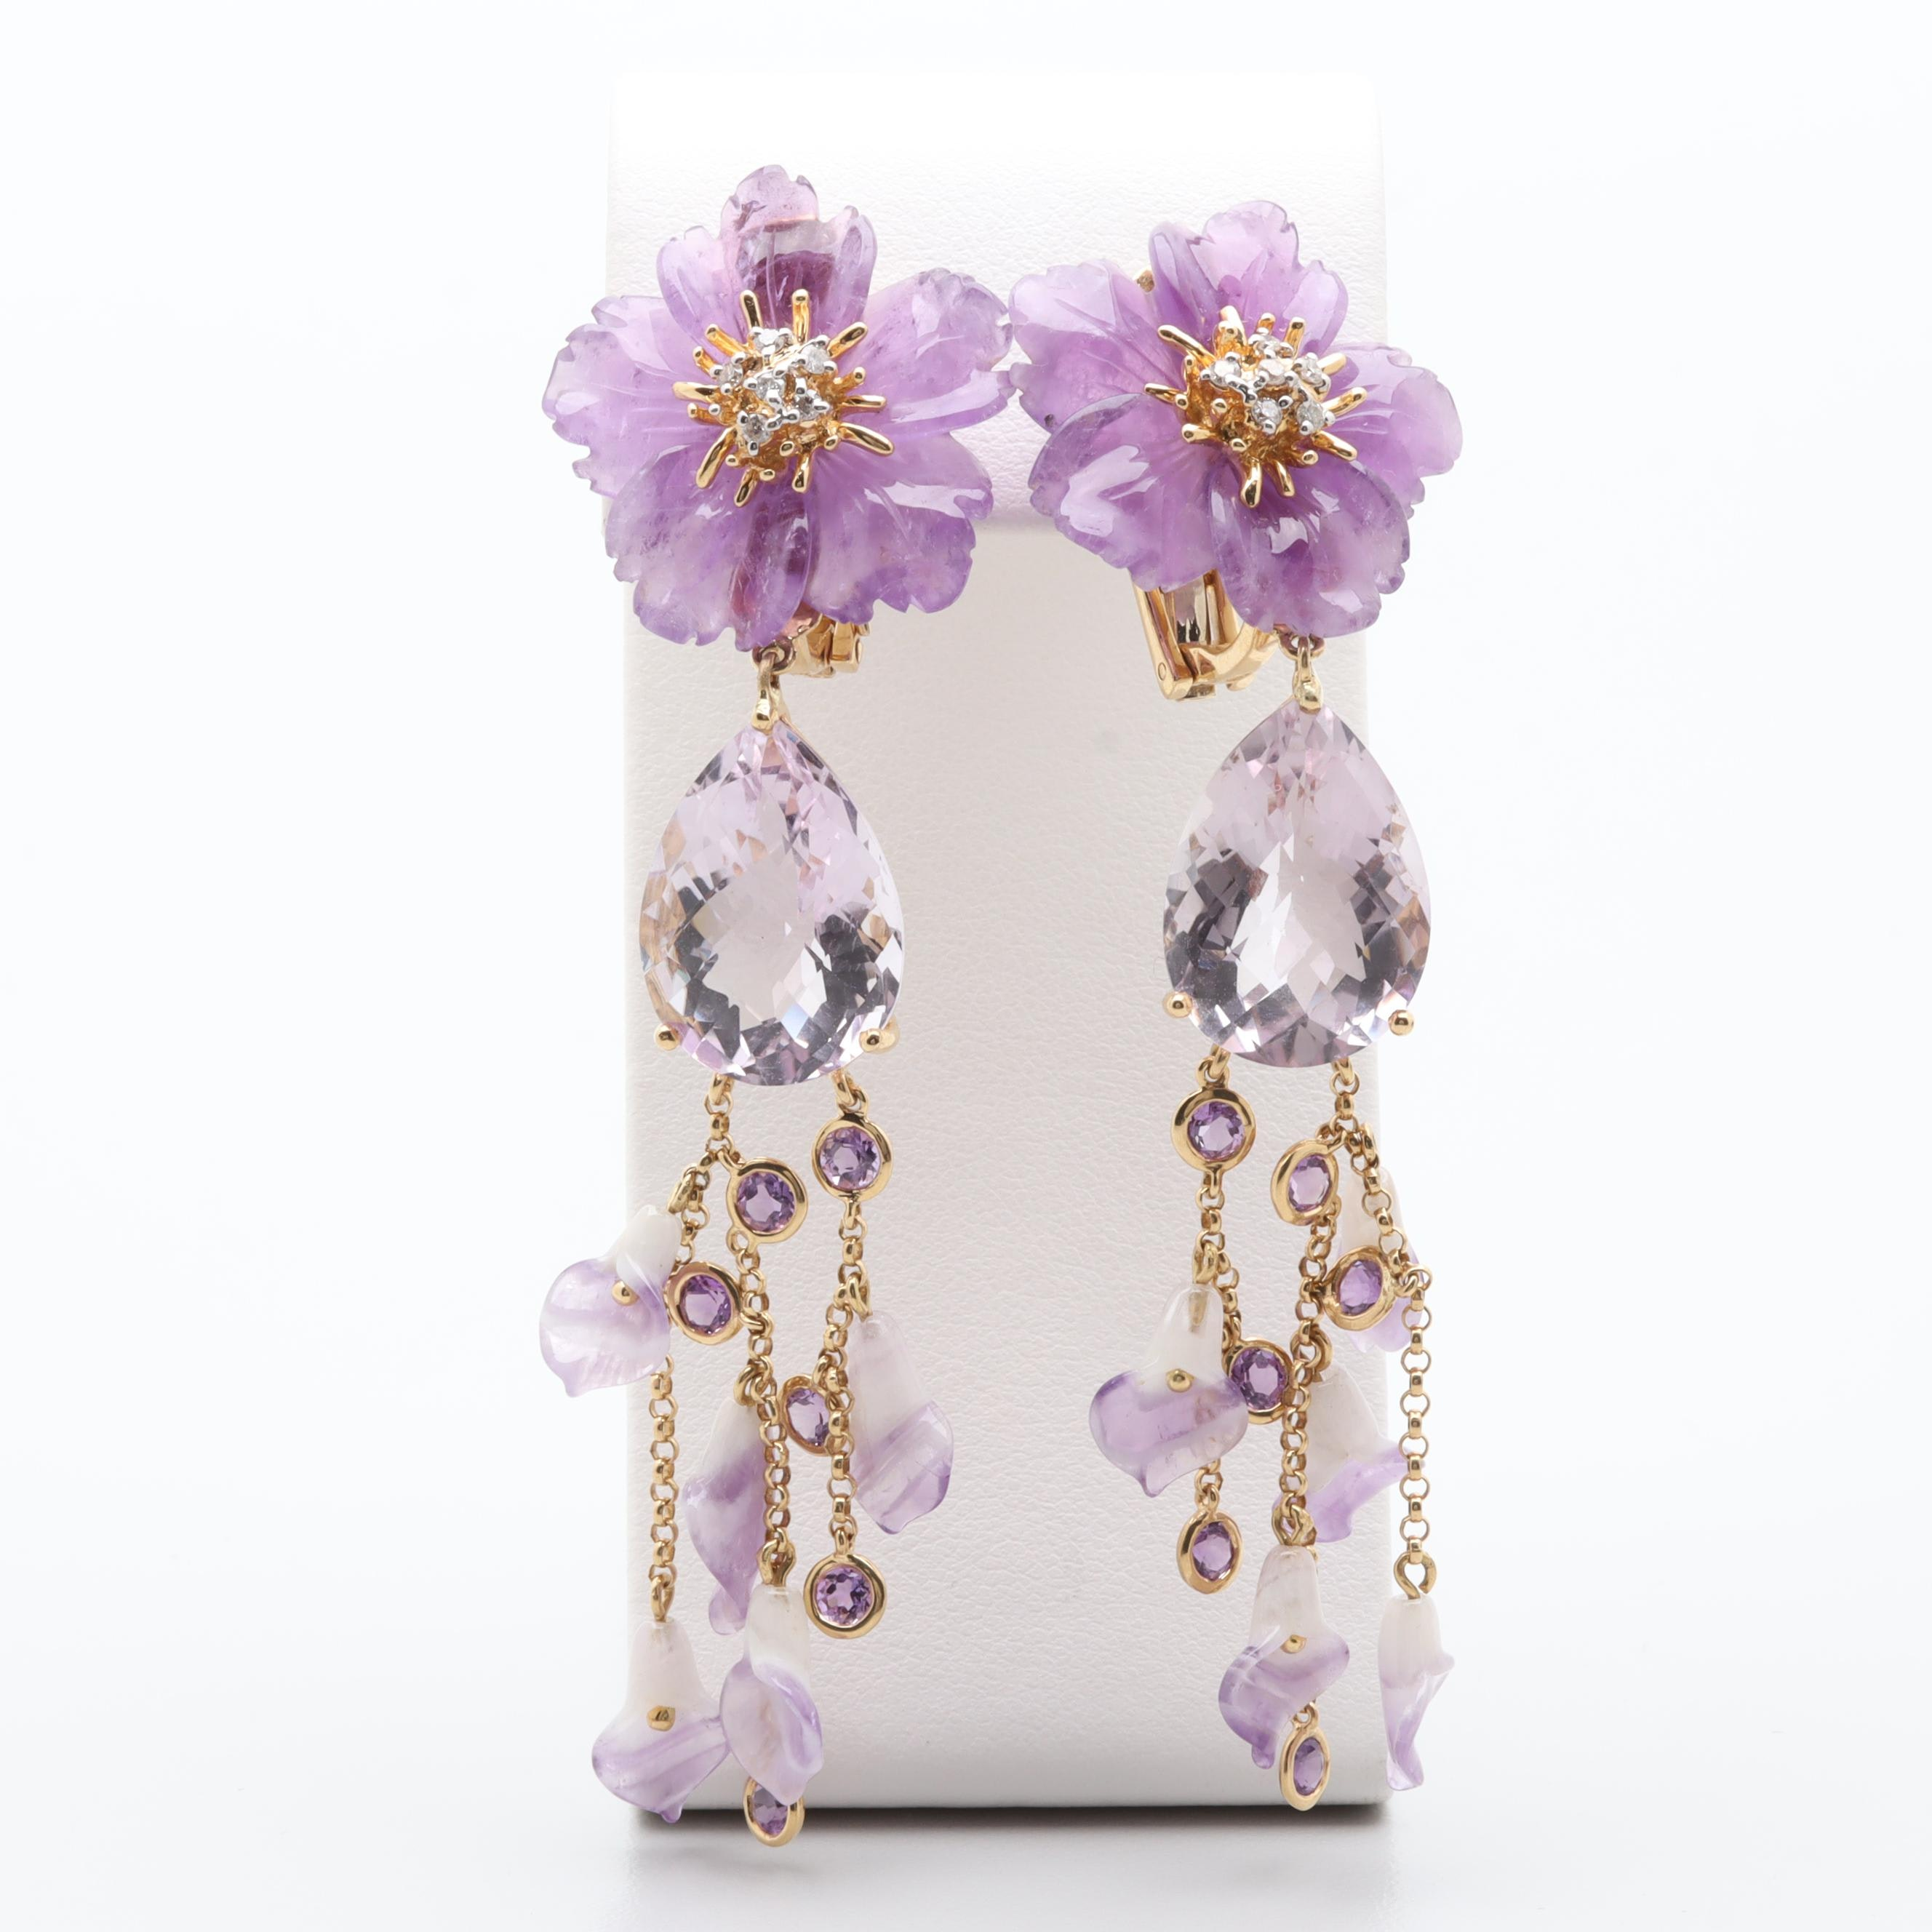 18K Yellow Gold Amethyst and Diamond Floral Motif Dangle Earrings